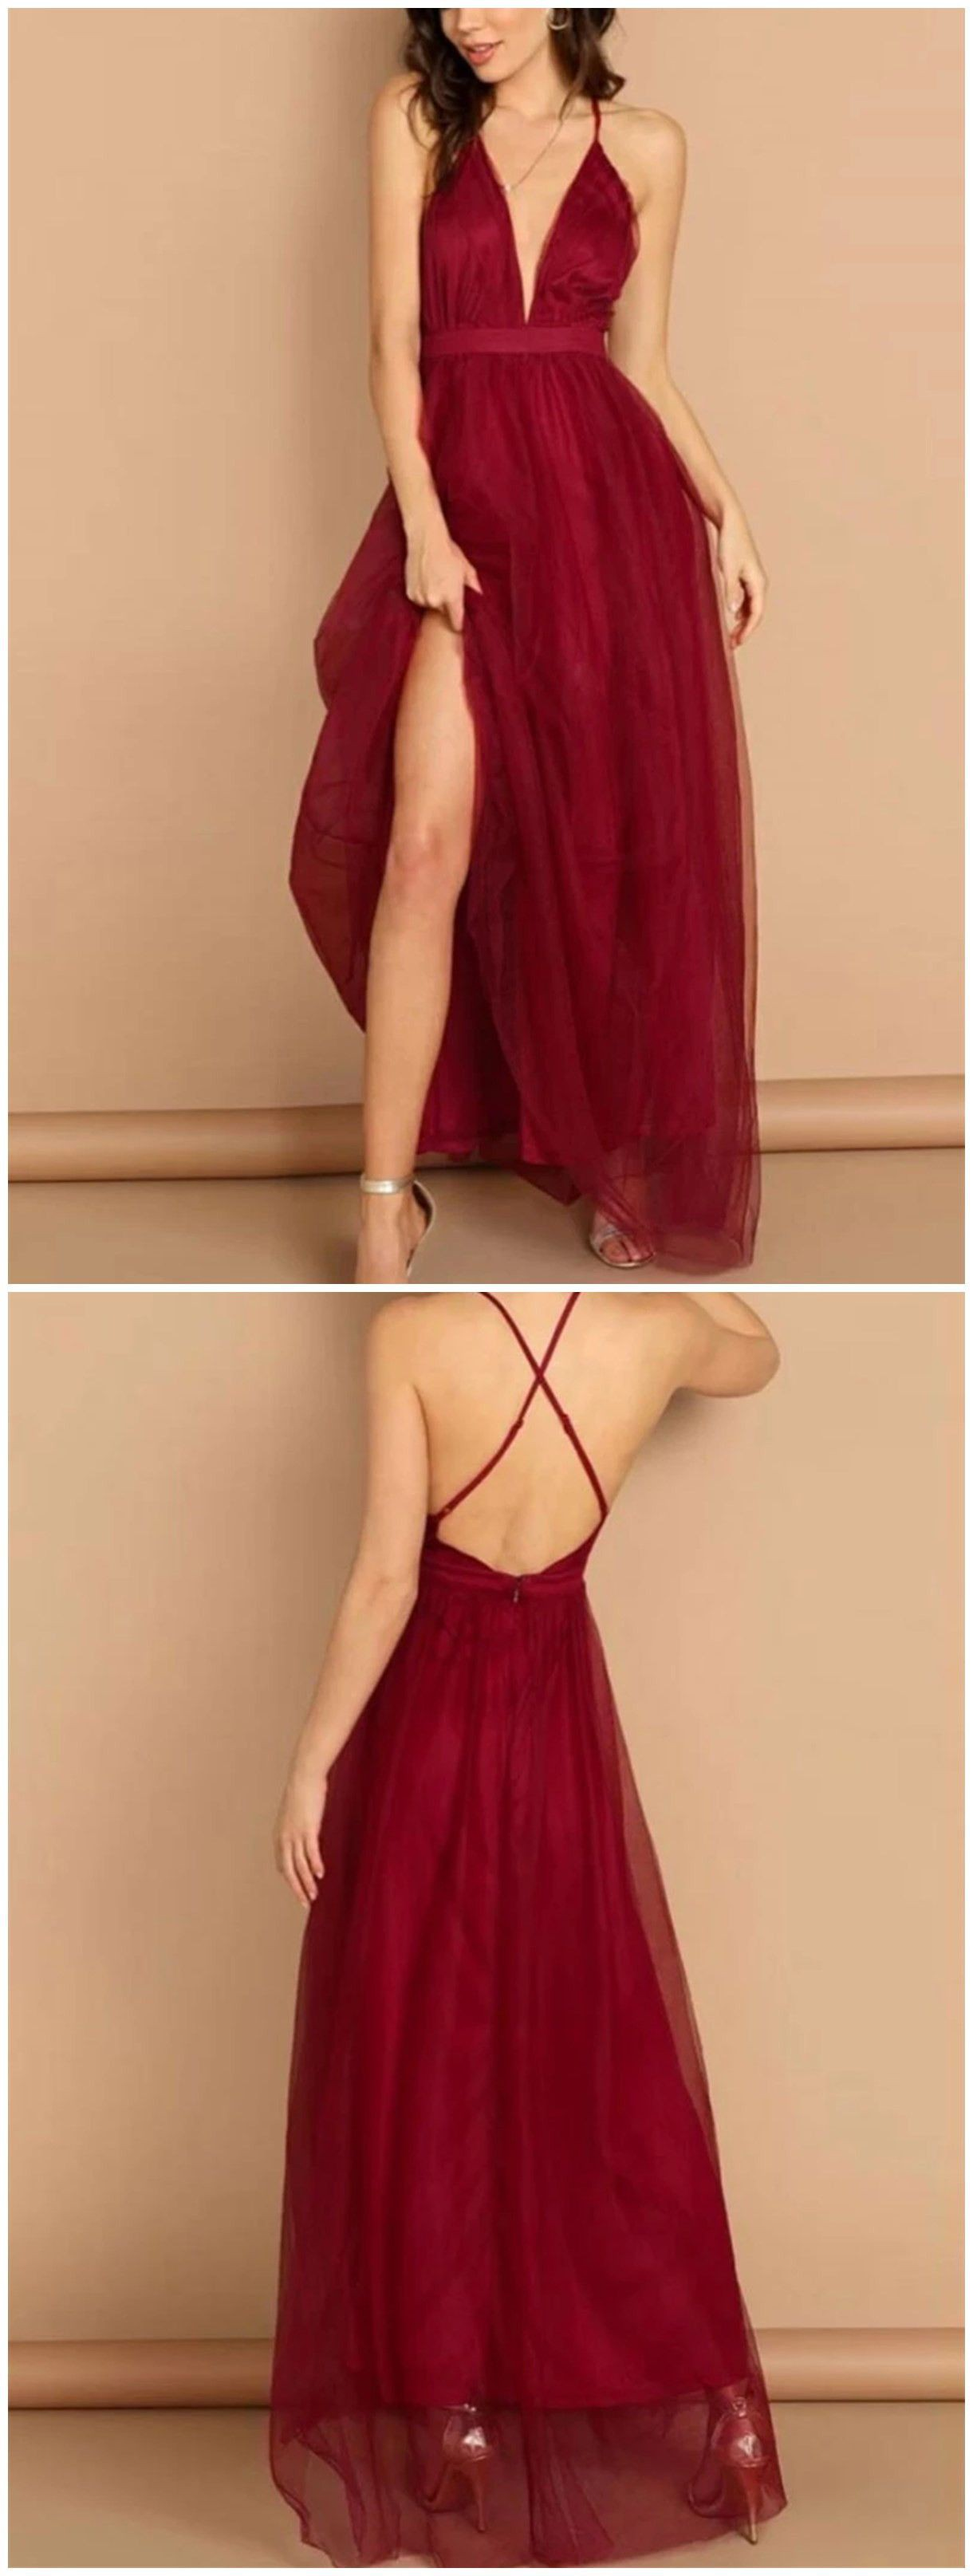 Cute dresses for women party